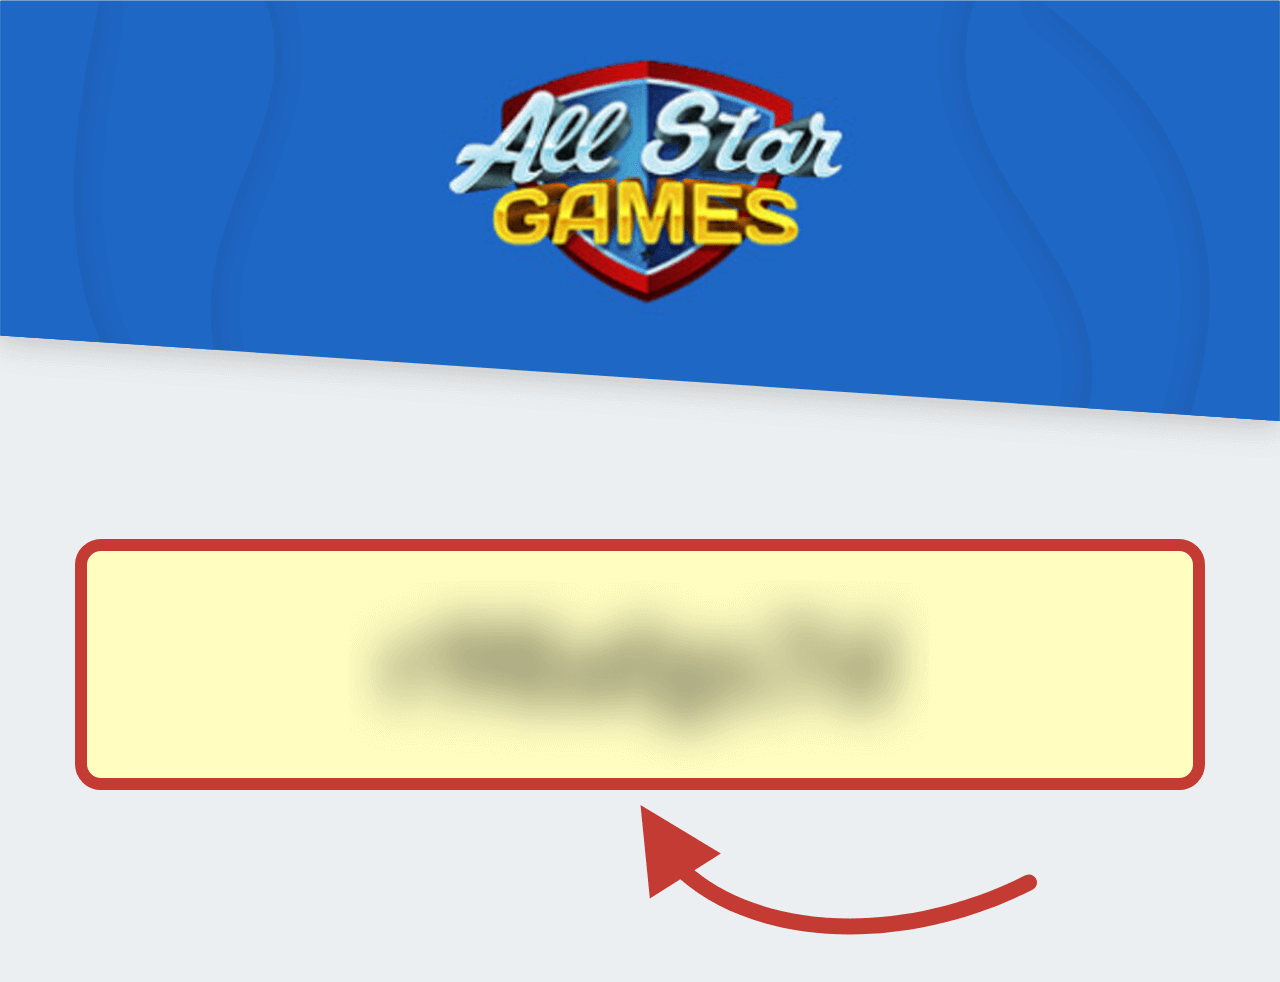 All Star Games Casino Bonus Code